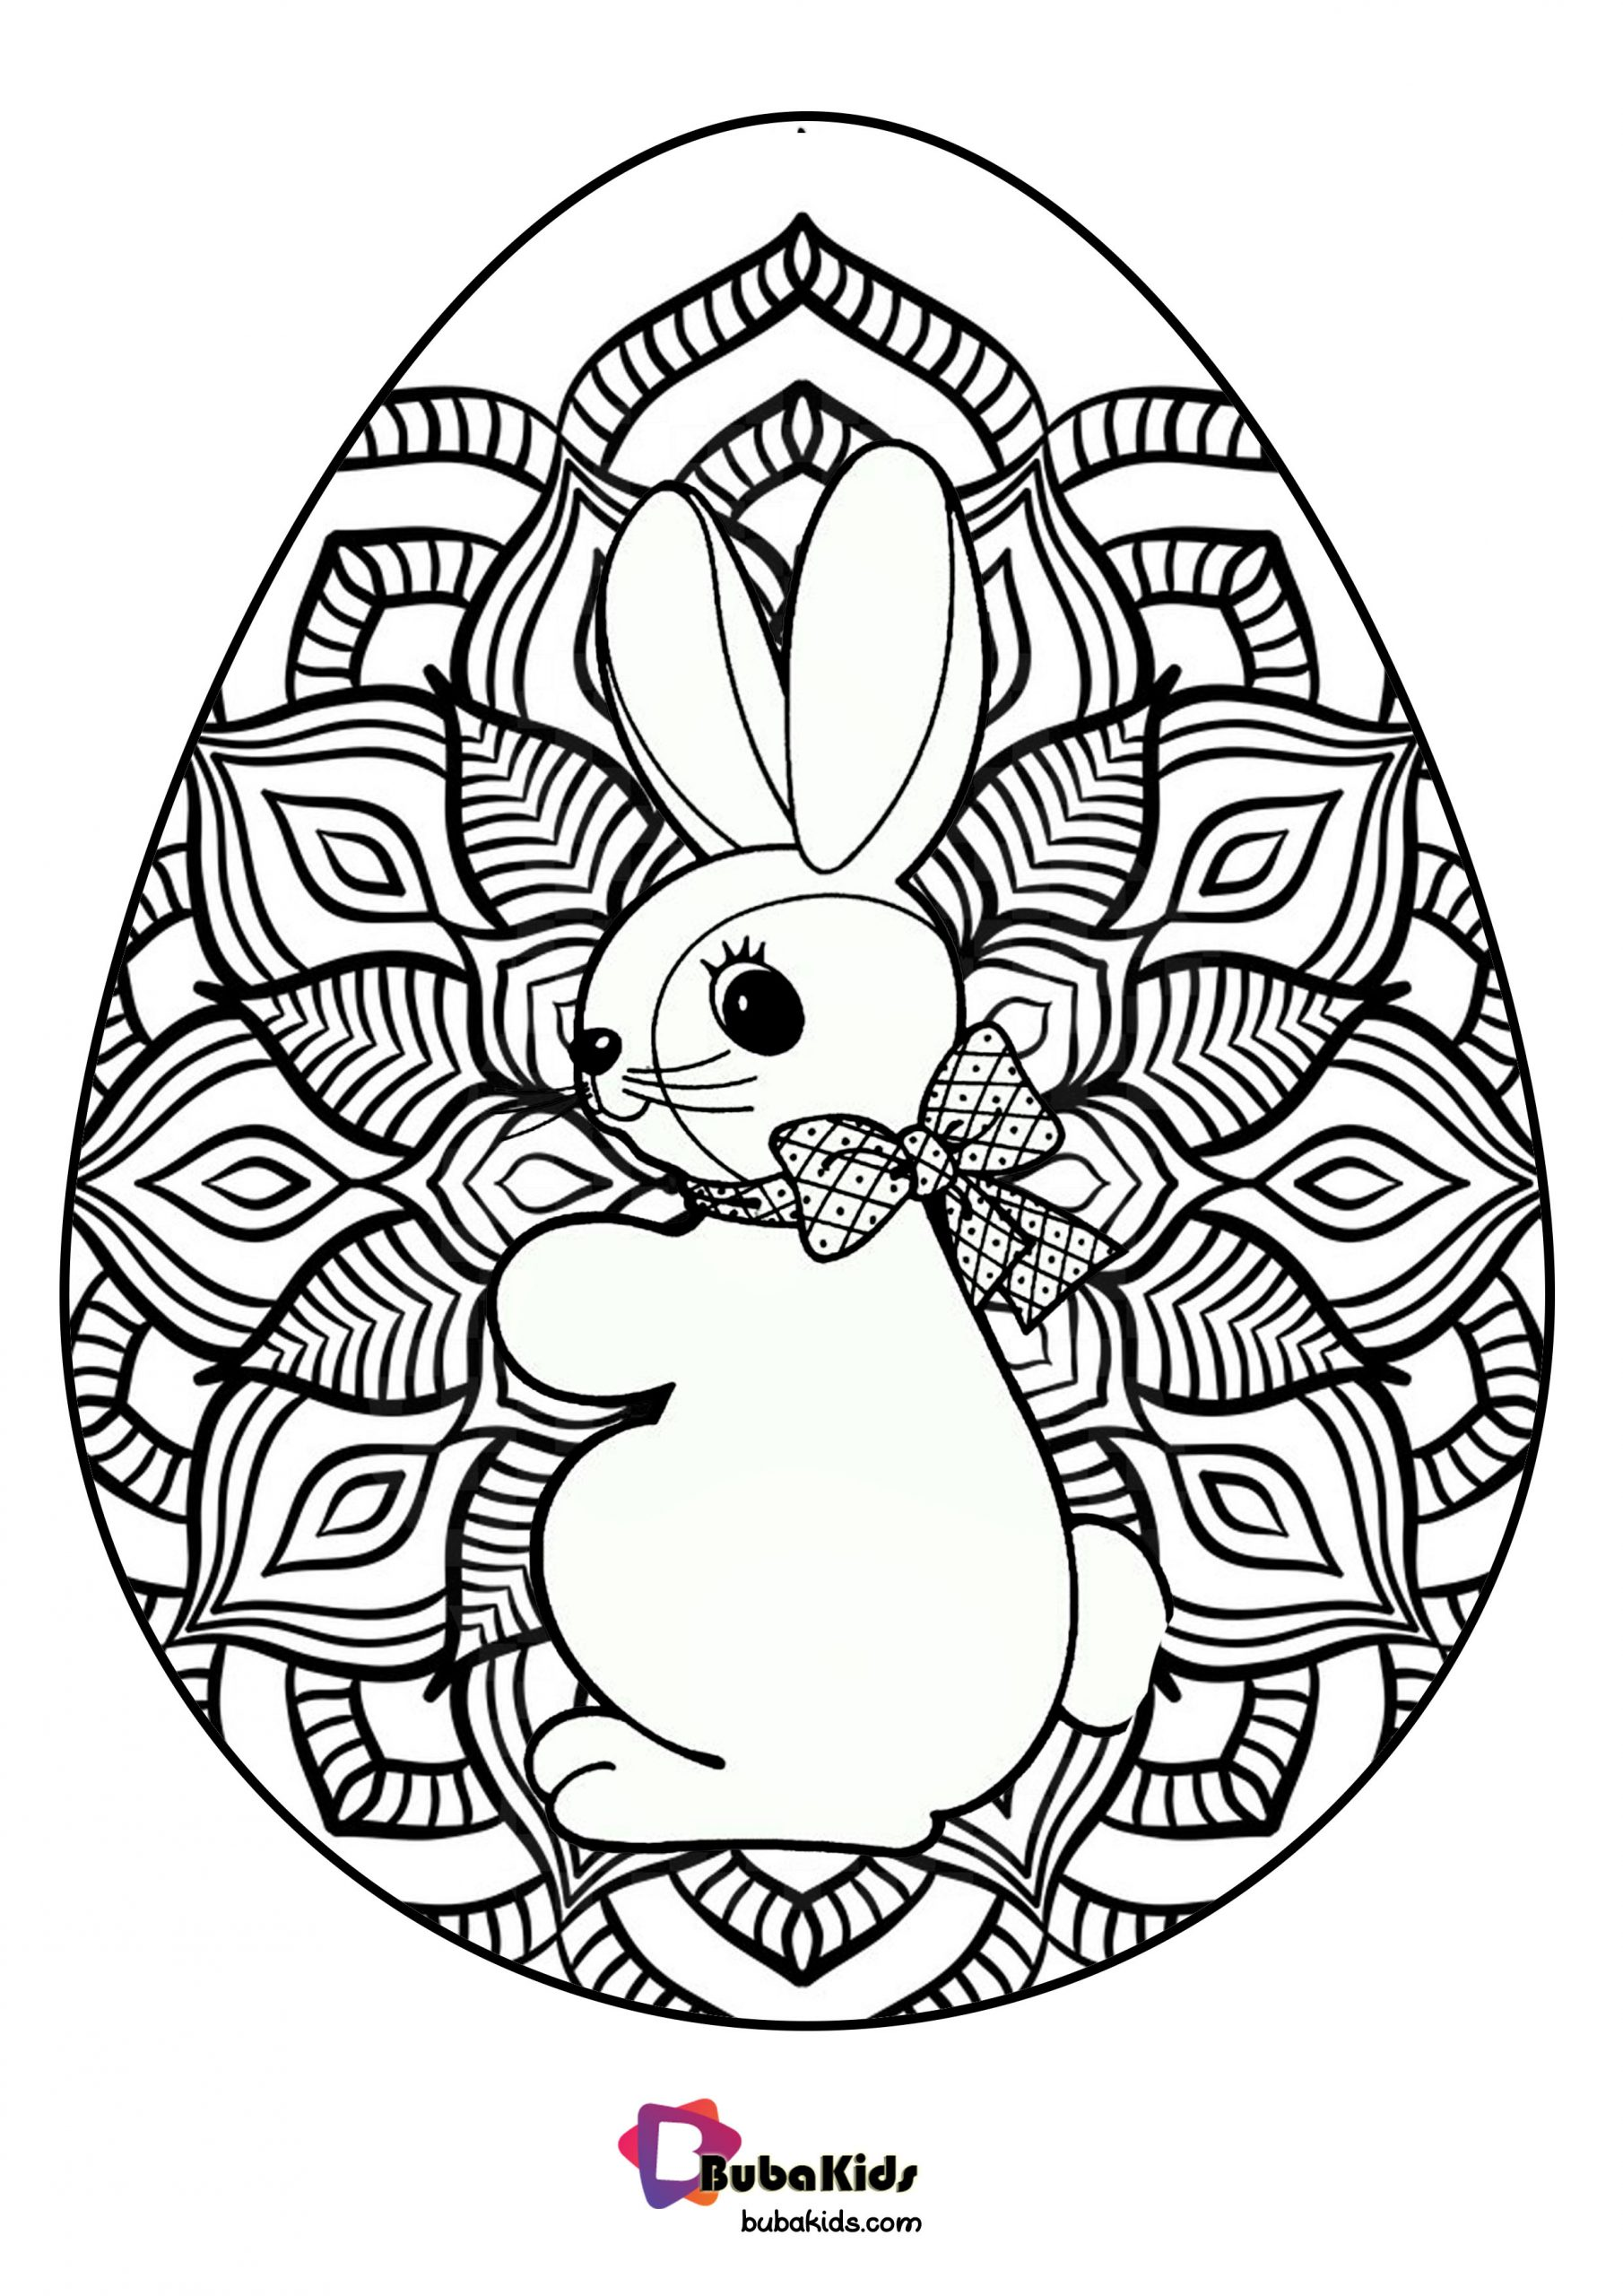 Bunny Easter Egg Bubakids Coloring Page Wallpaper